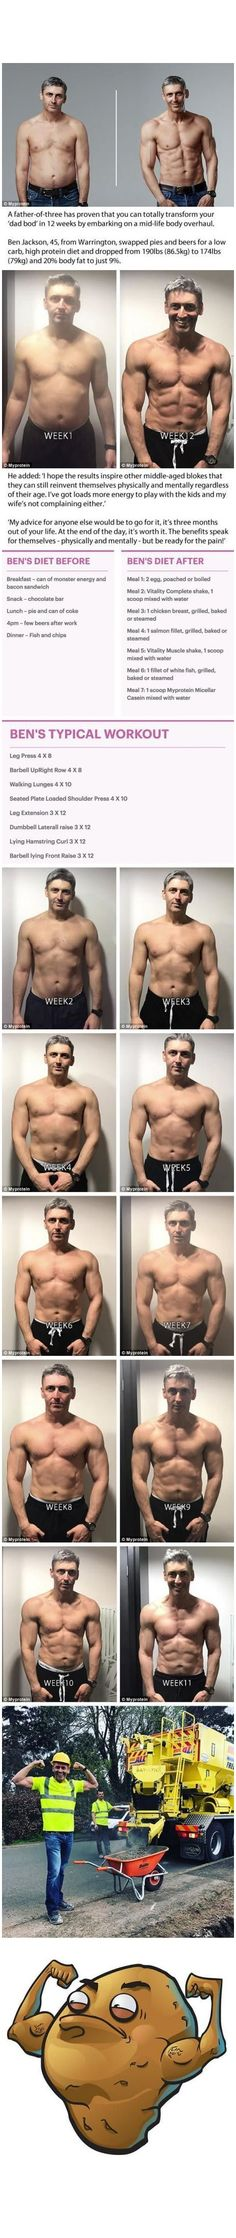 Yoga Fitness, Fitness Workouts, At Home Workouts, Fitness Motivation, Muscle Fitness, Muscle Nutrition, Muscle Food, Muscle Men, Physical Fitness